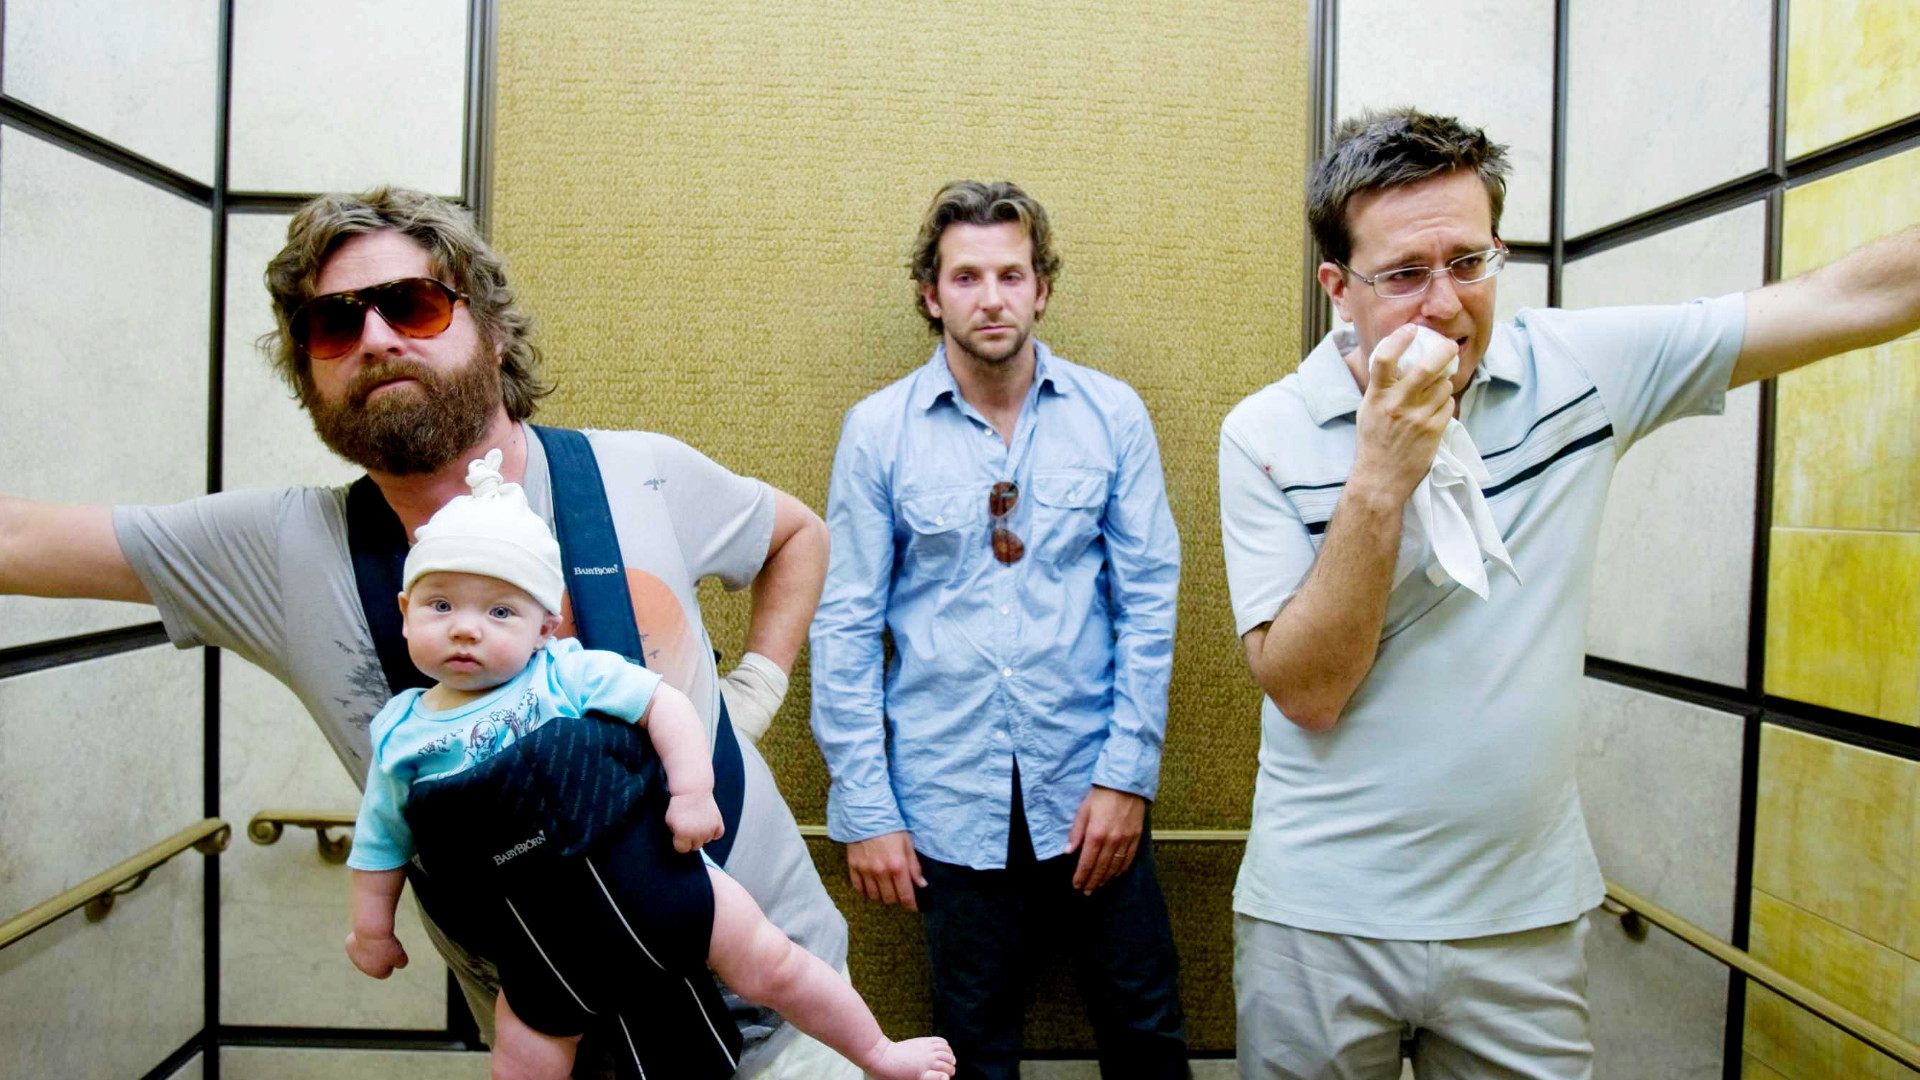 Three stars from the Hangover.